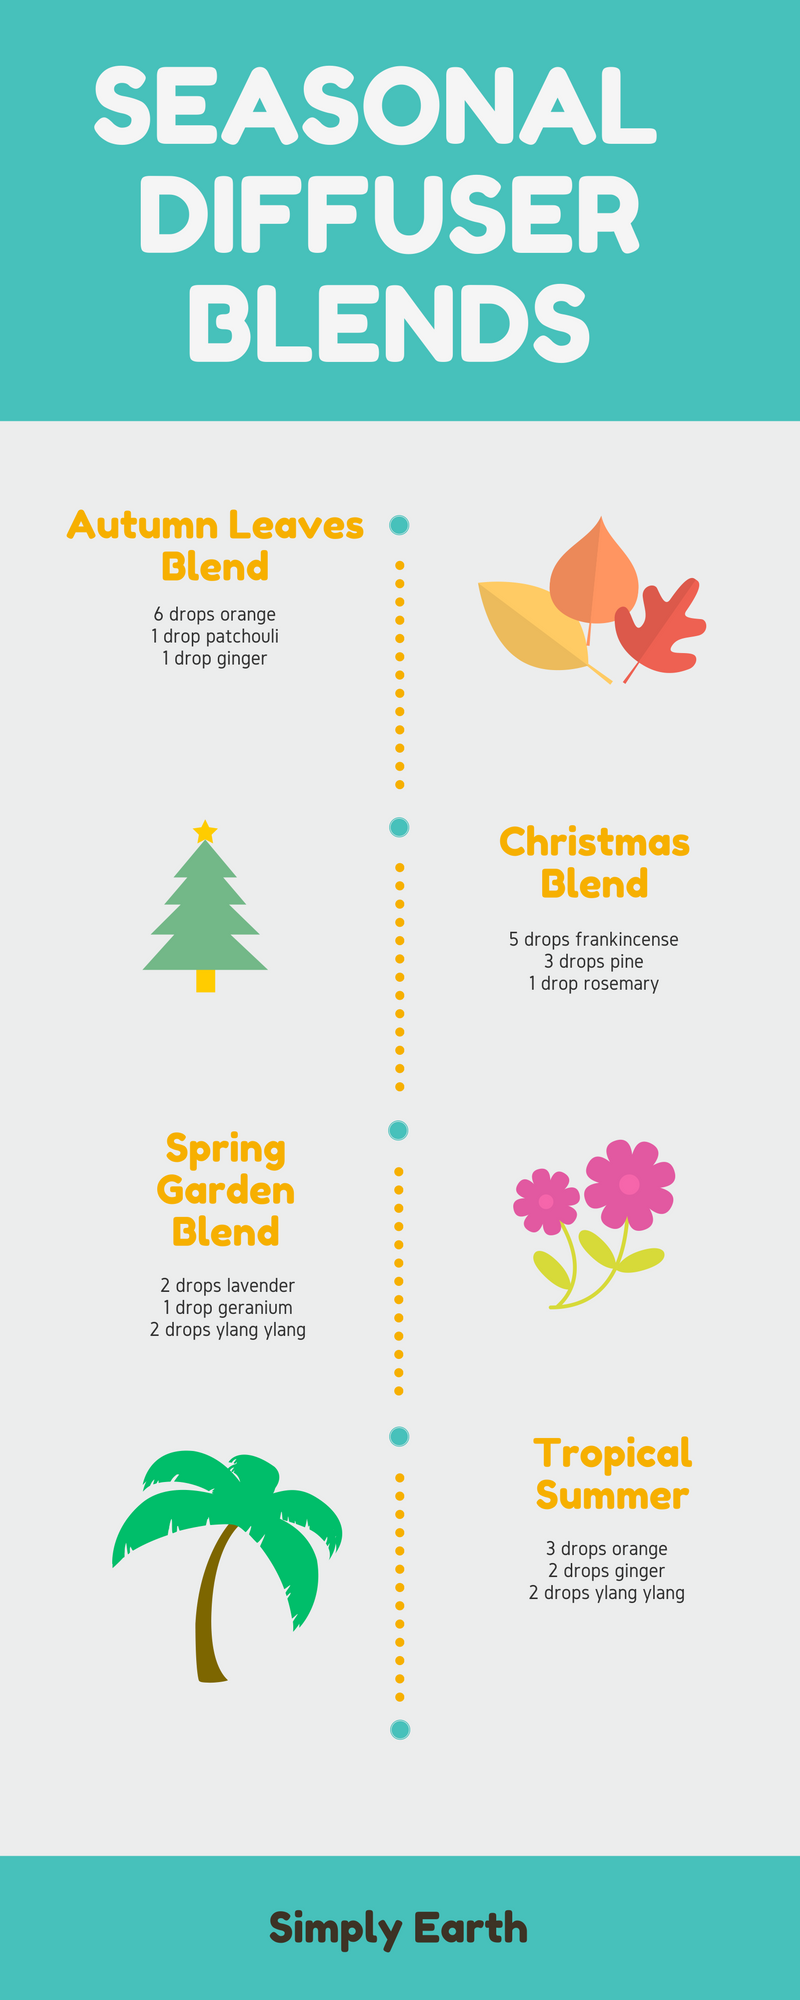 Seasonal Diffuser Blends